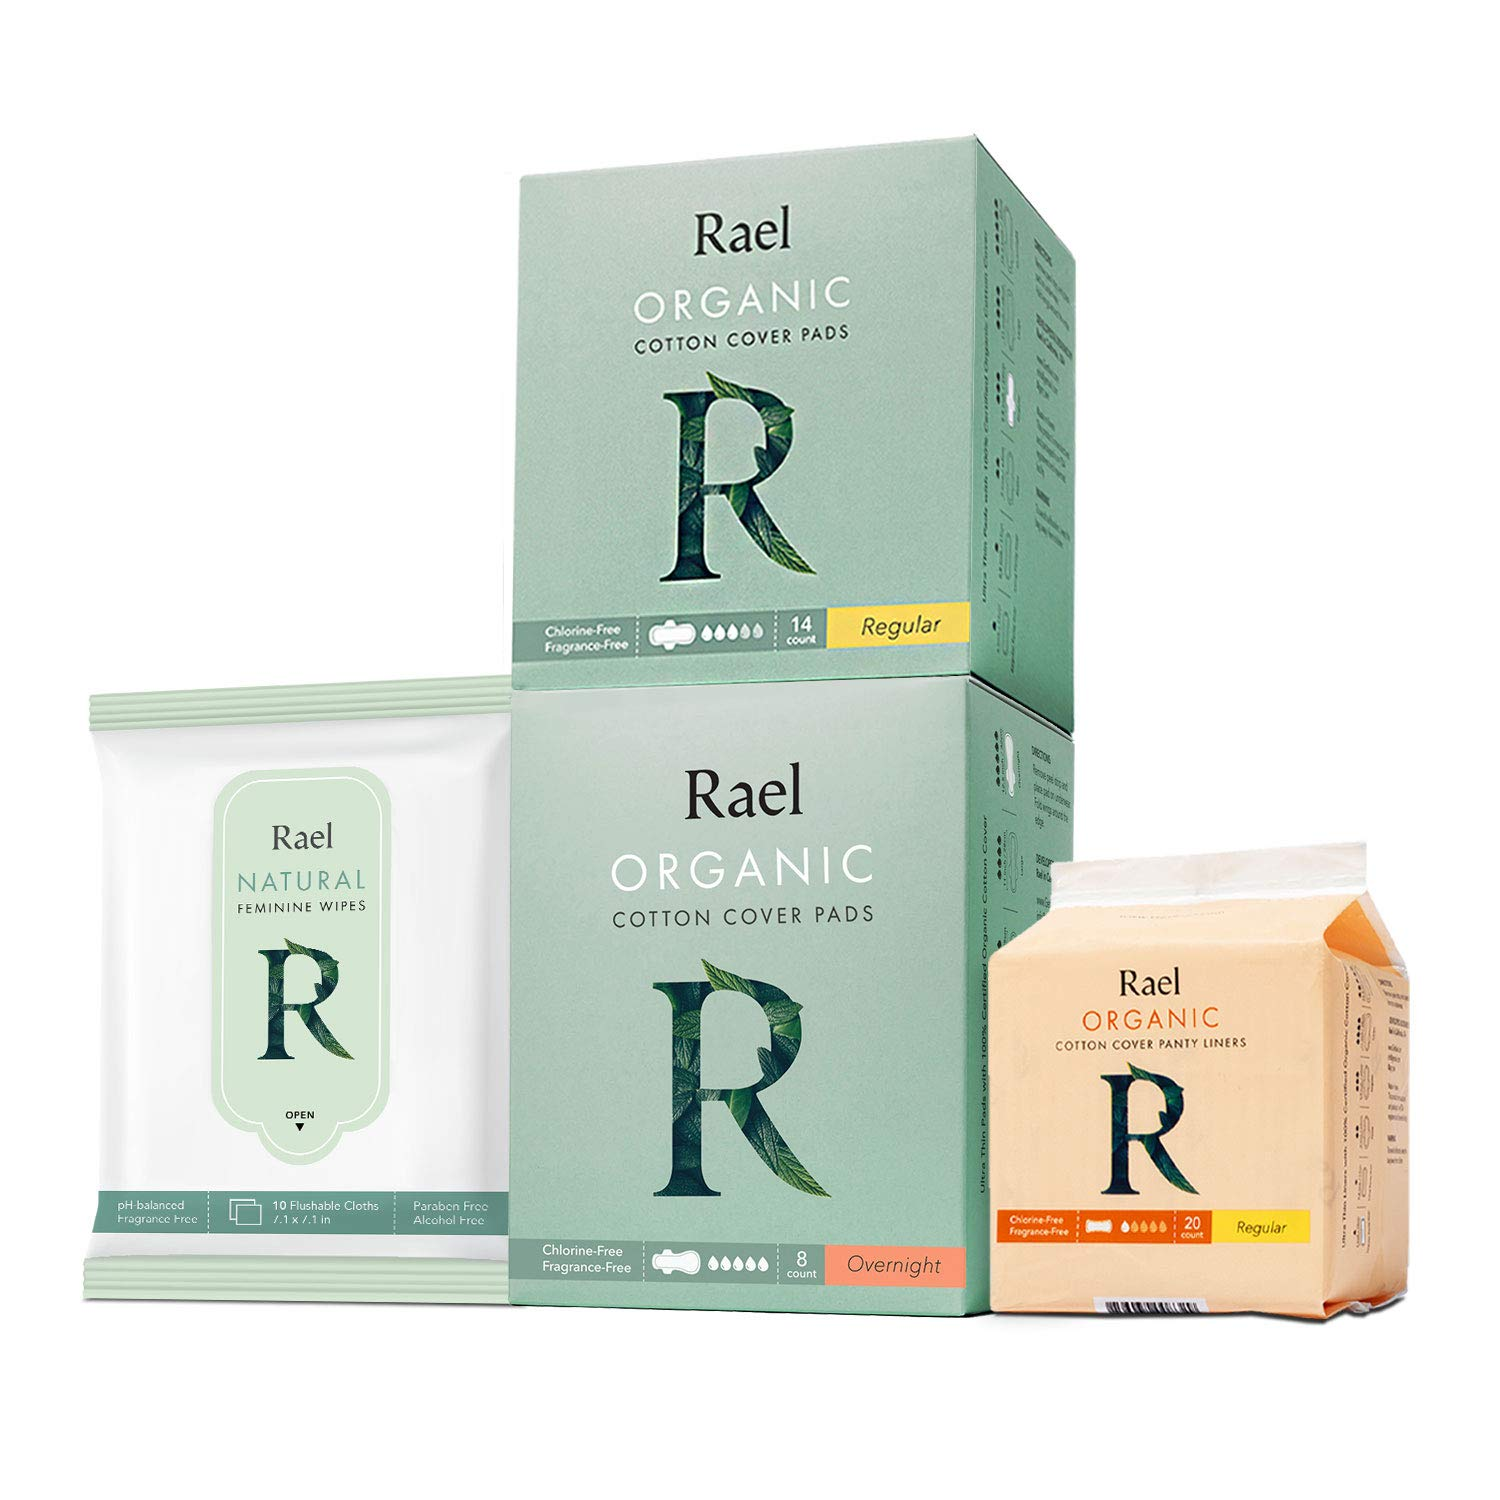 Rael Organic Pads Value Packs-Organic Cotton Regular Pads, Overnight Pads, Regular Liners and Natural Feminine Wipes by Rael (Overnight Set) by Rael